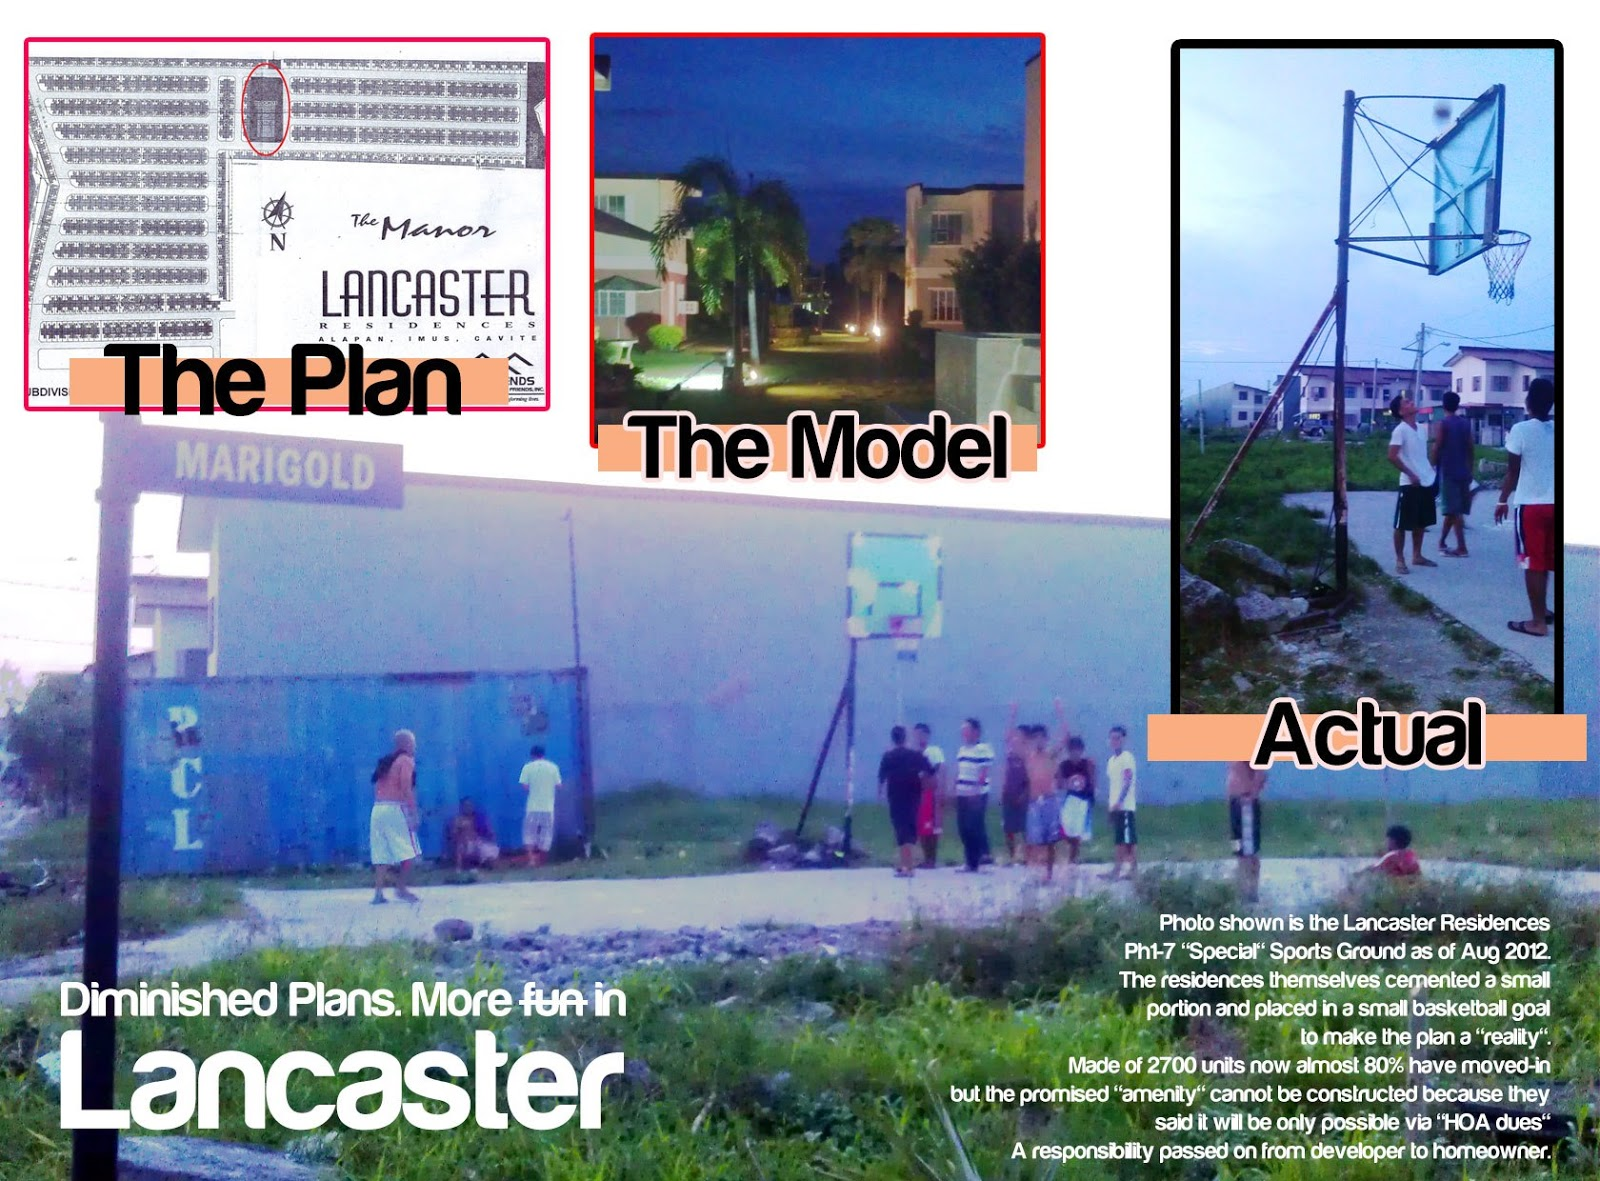 Lancaster residences imus homeowners how to prevent being scammed lancaster estates dimished plans malvernweather Choice Image